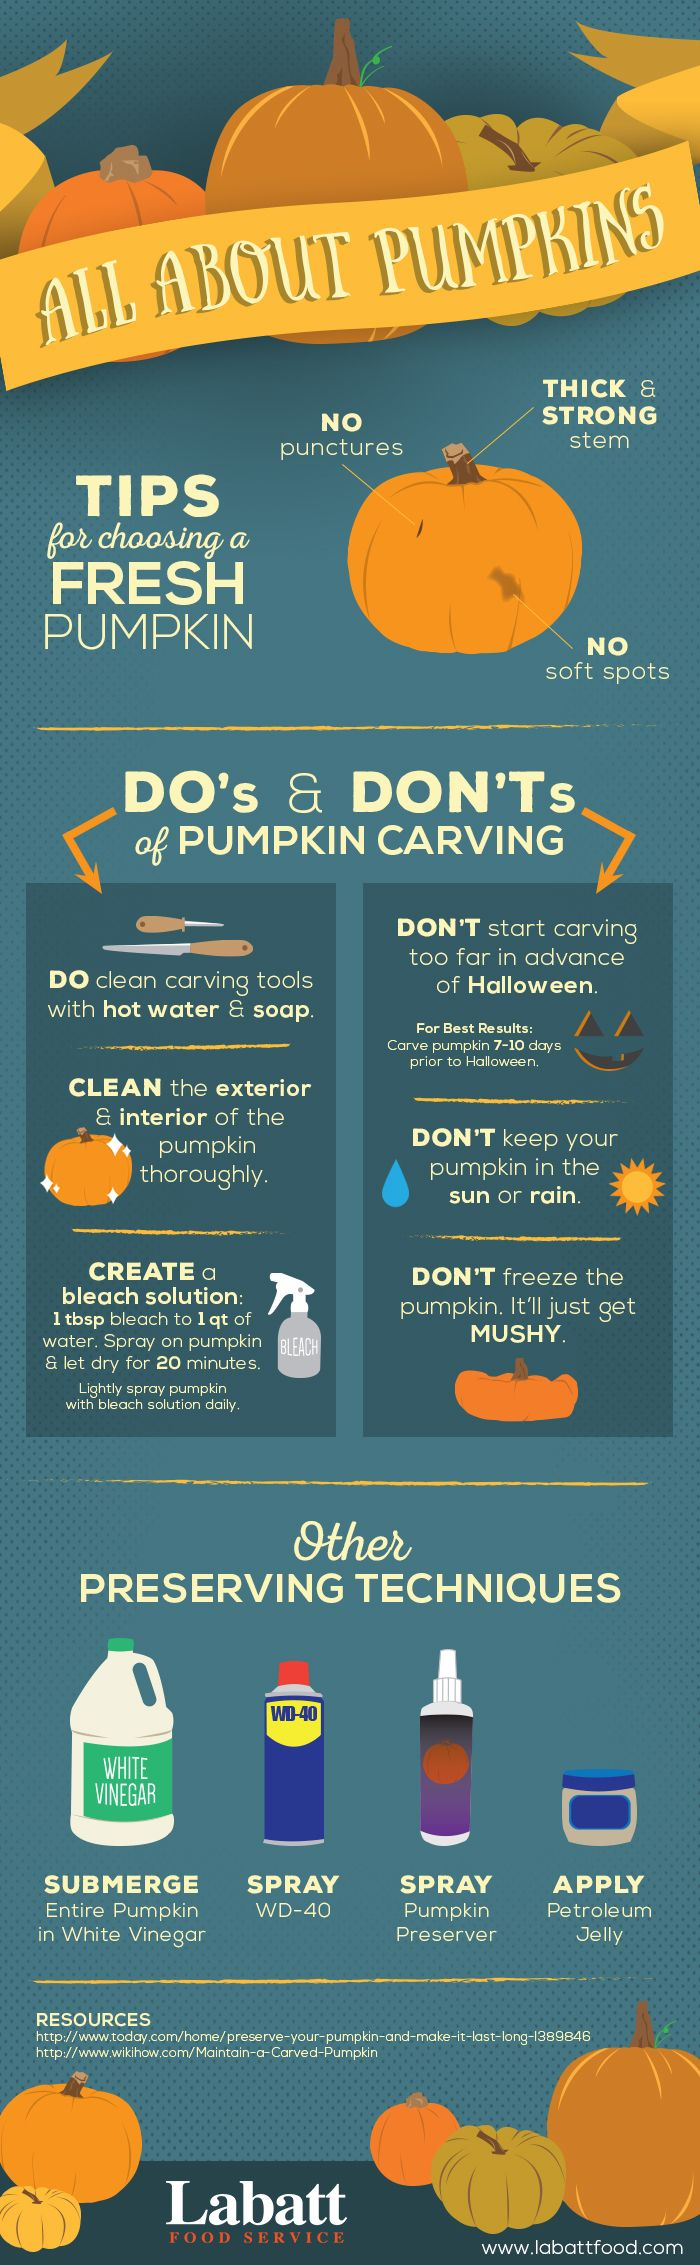 Want to preserve your beautifully carved pumpkin? Tips on how to pick one to preserving them #pumpkin #carving #labattfood